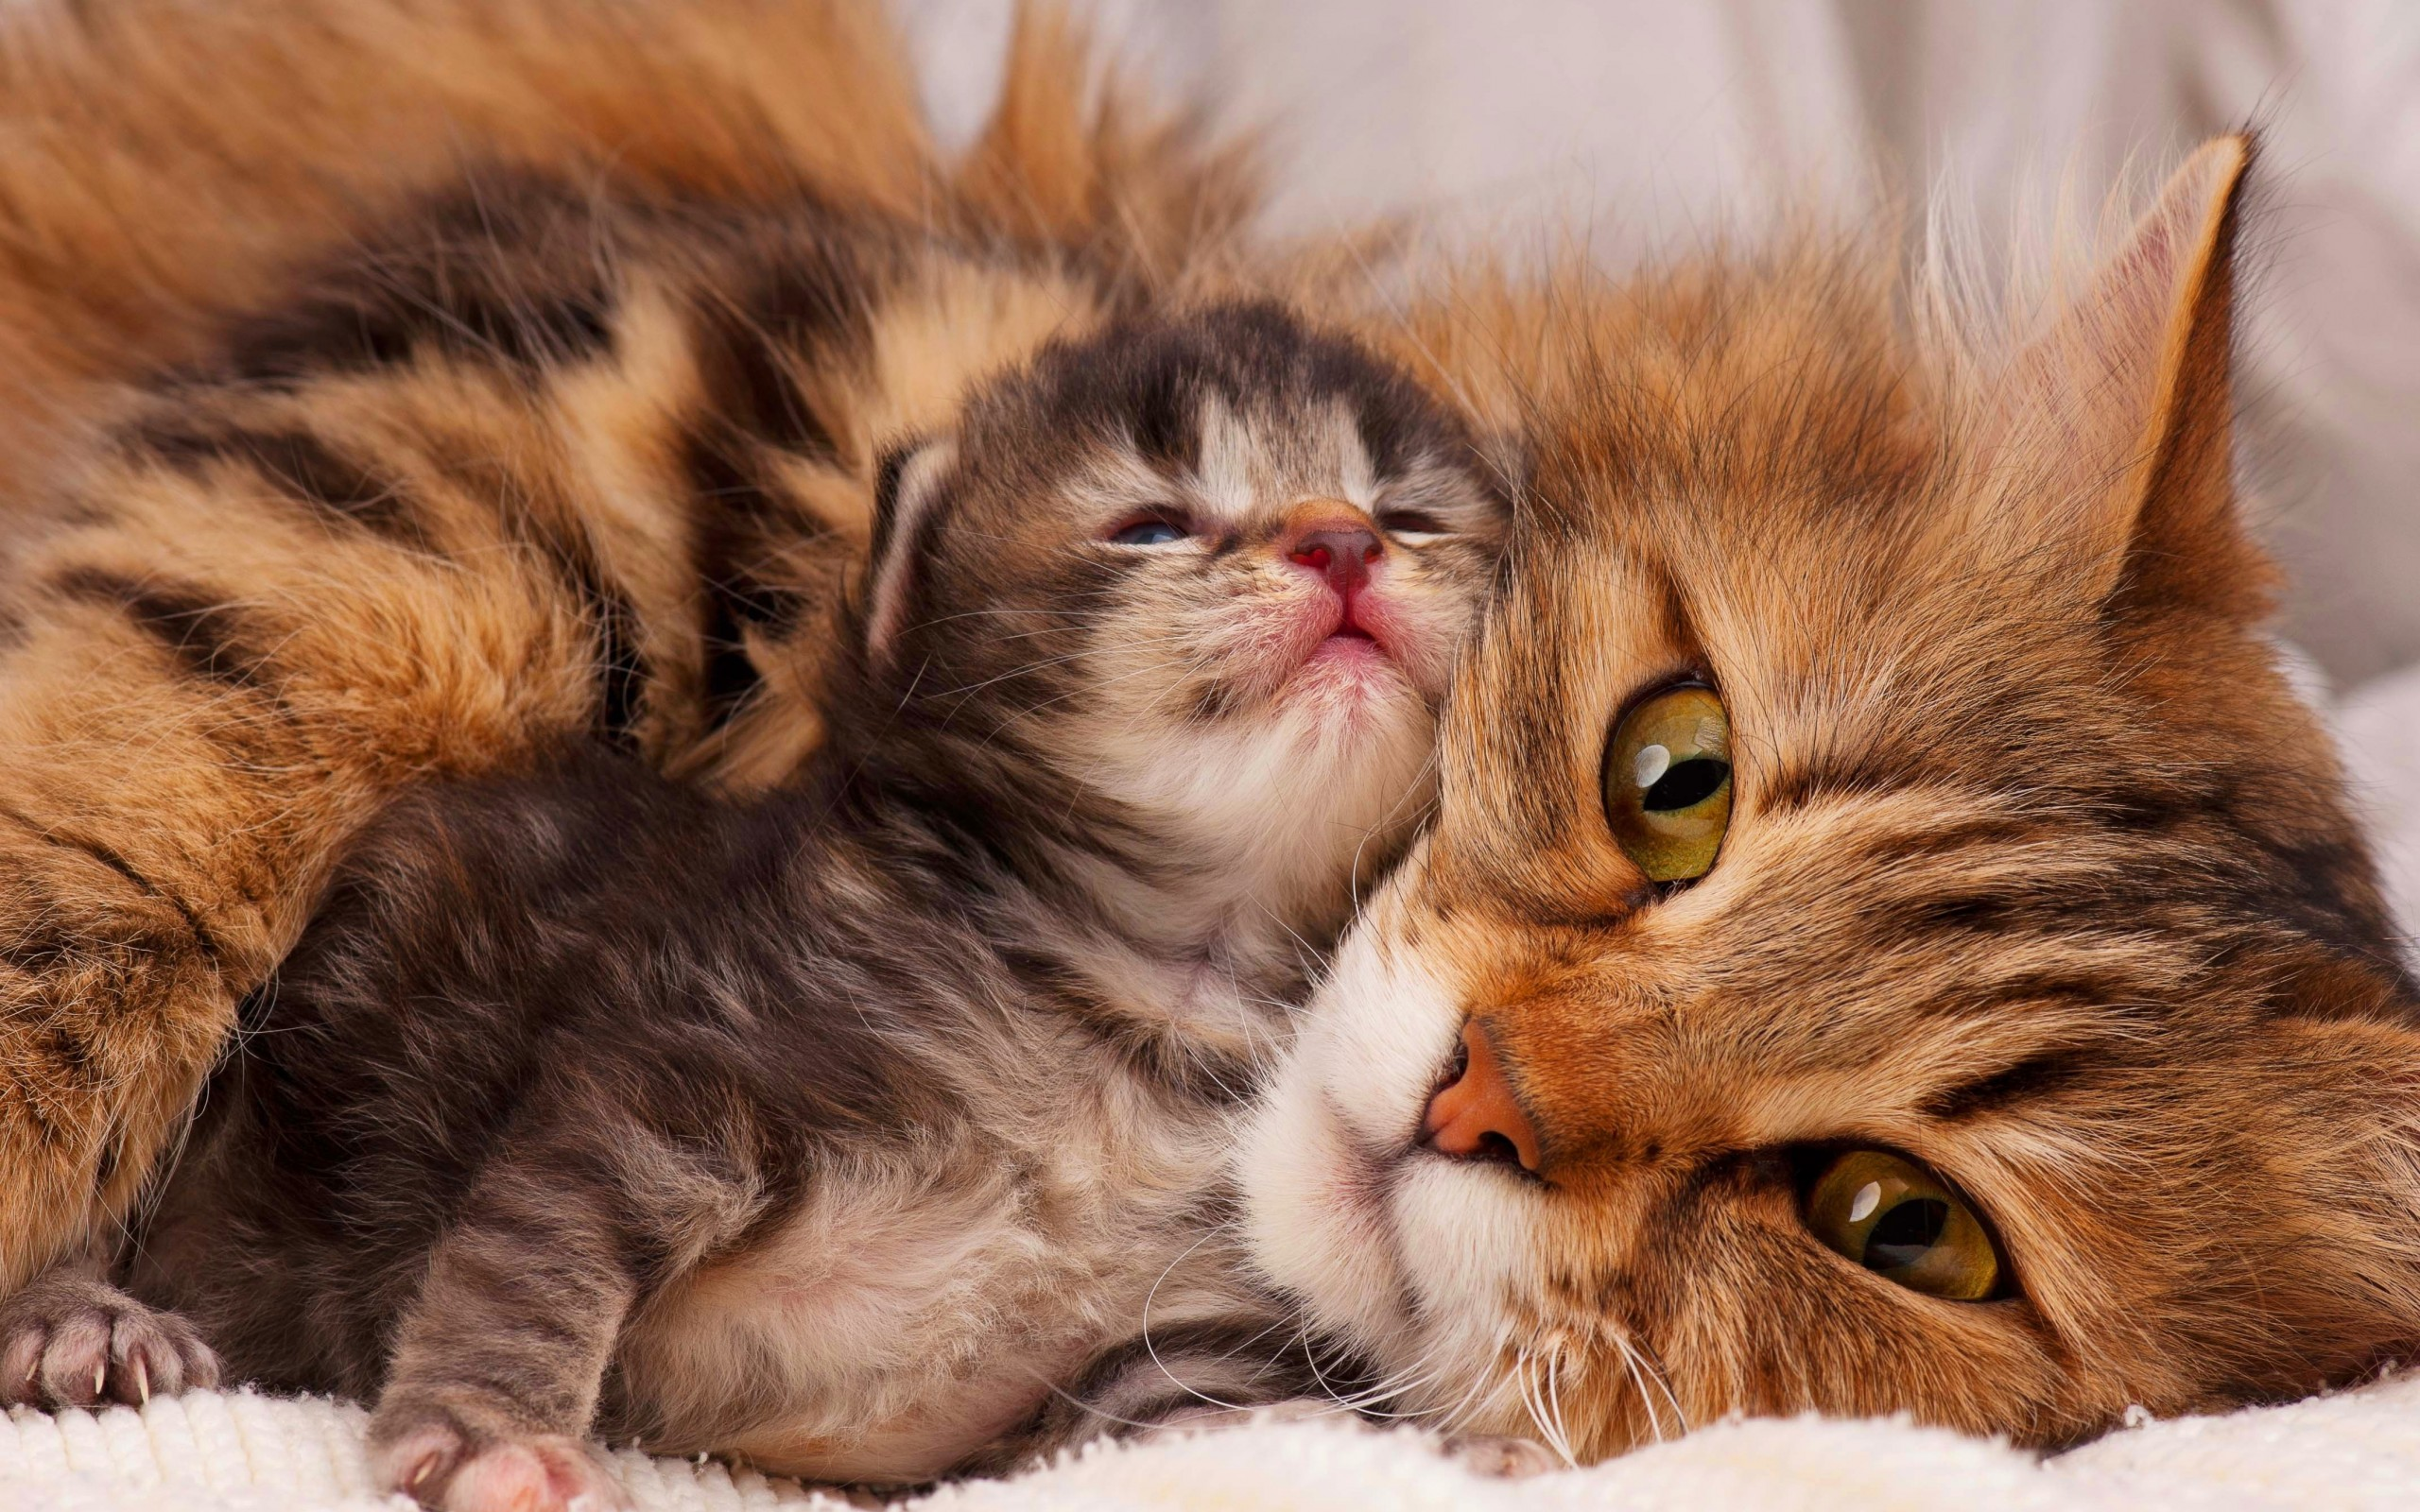 Mother Cat and her Kitten wallpaper 2560x1600